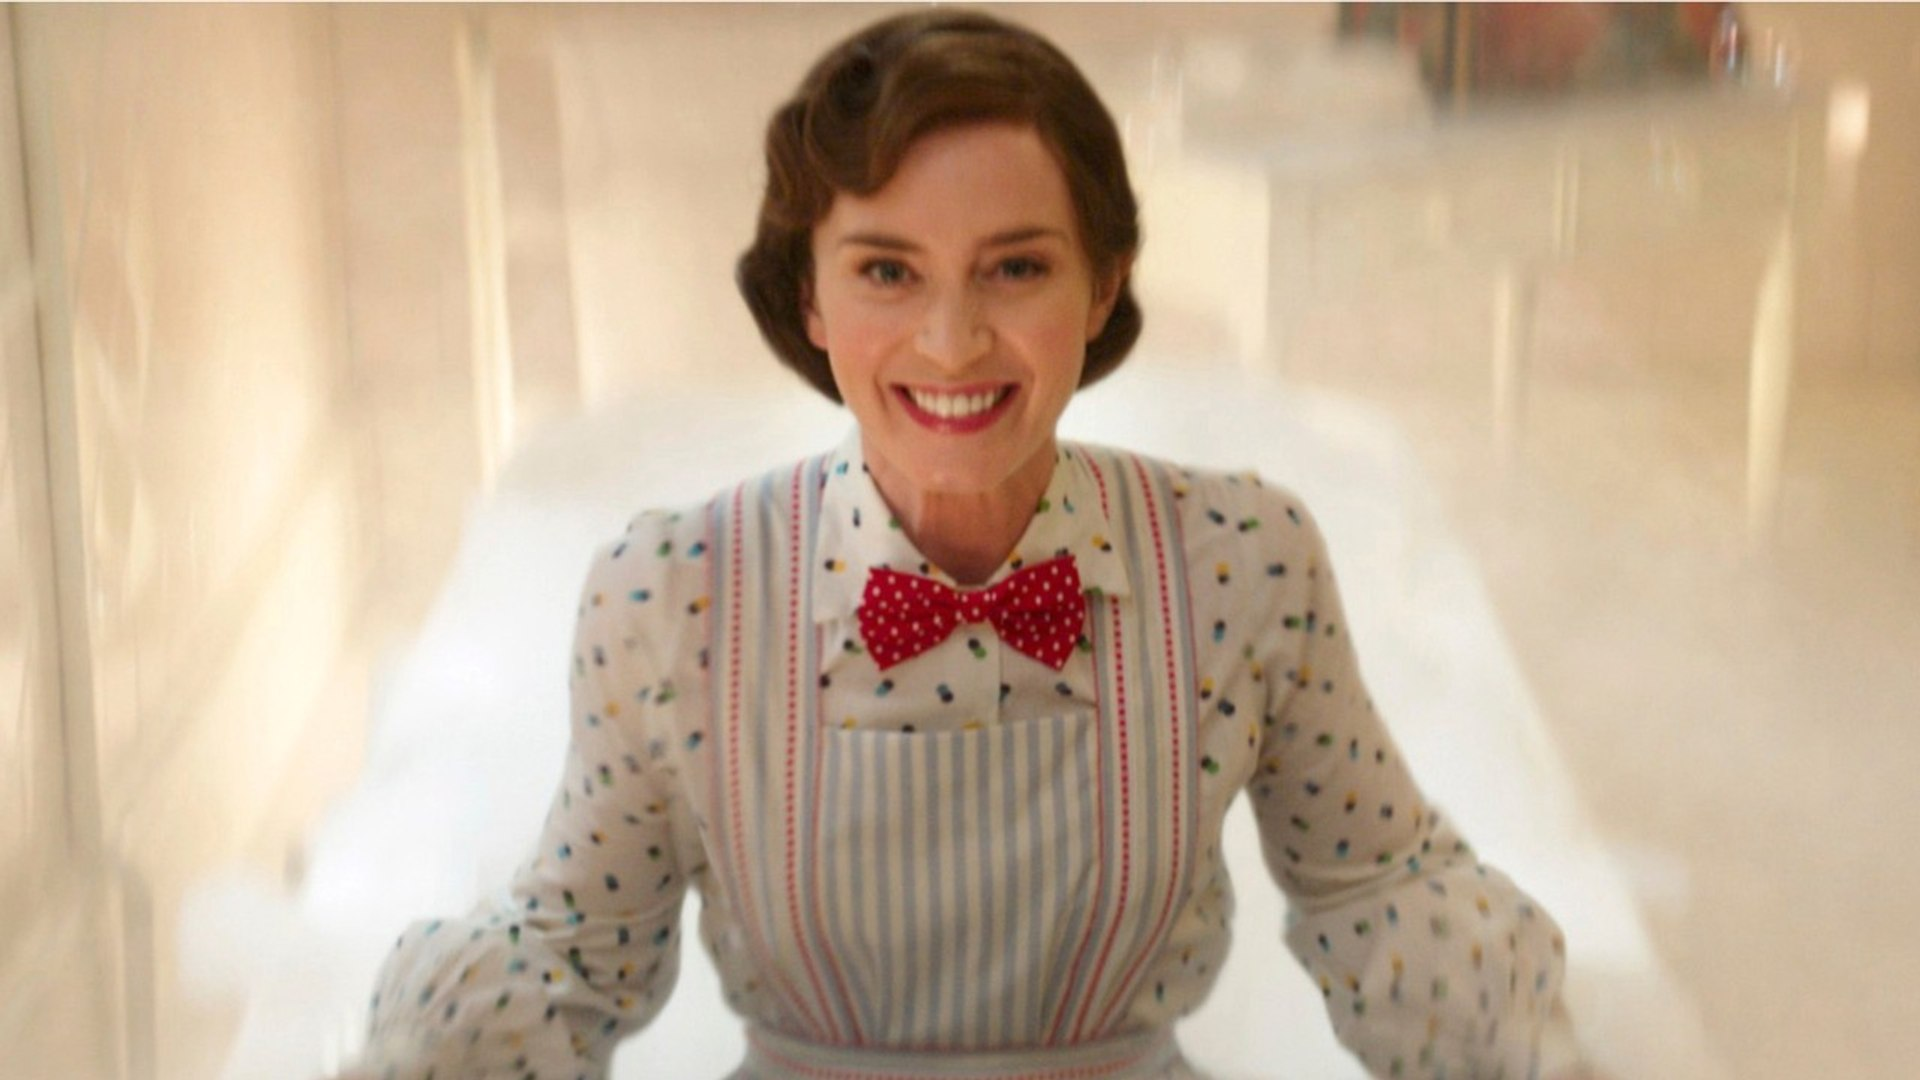 Is There A Post-Credit Scene In 'Mary Poppins Returns'?